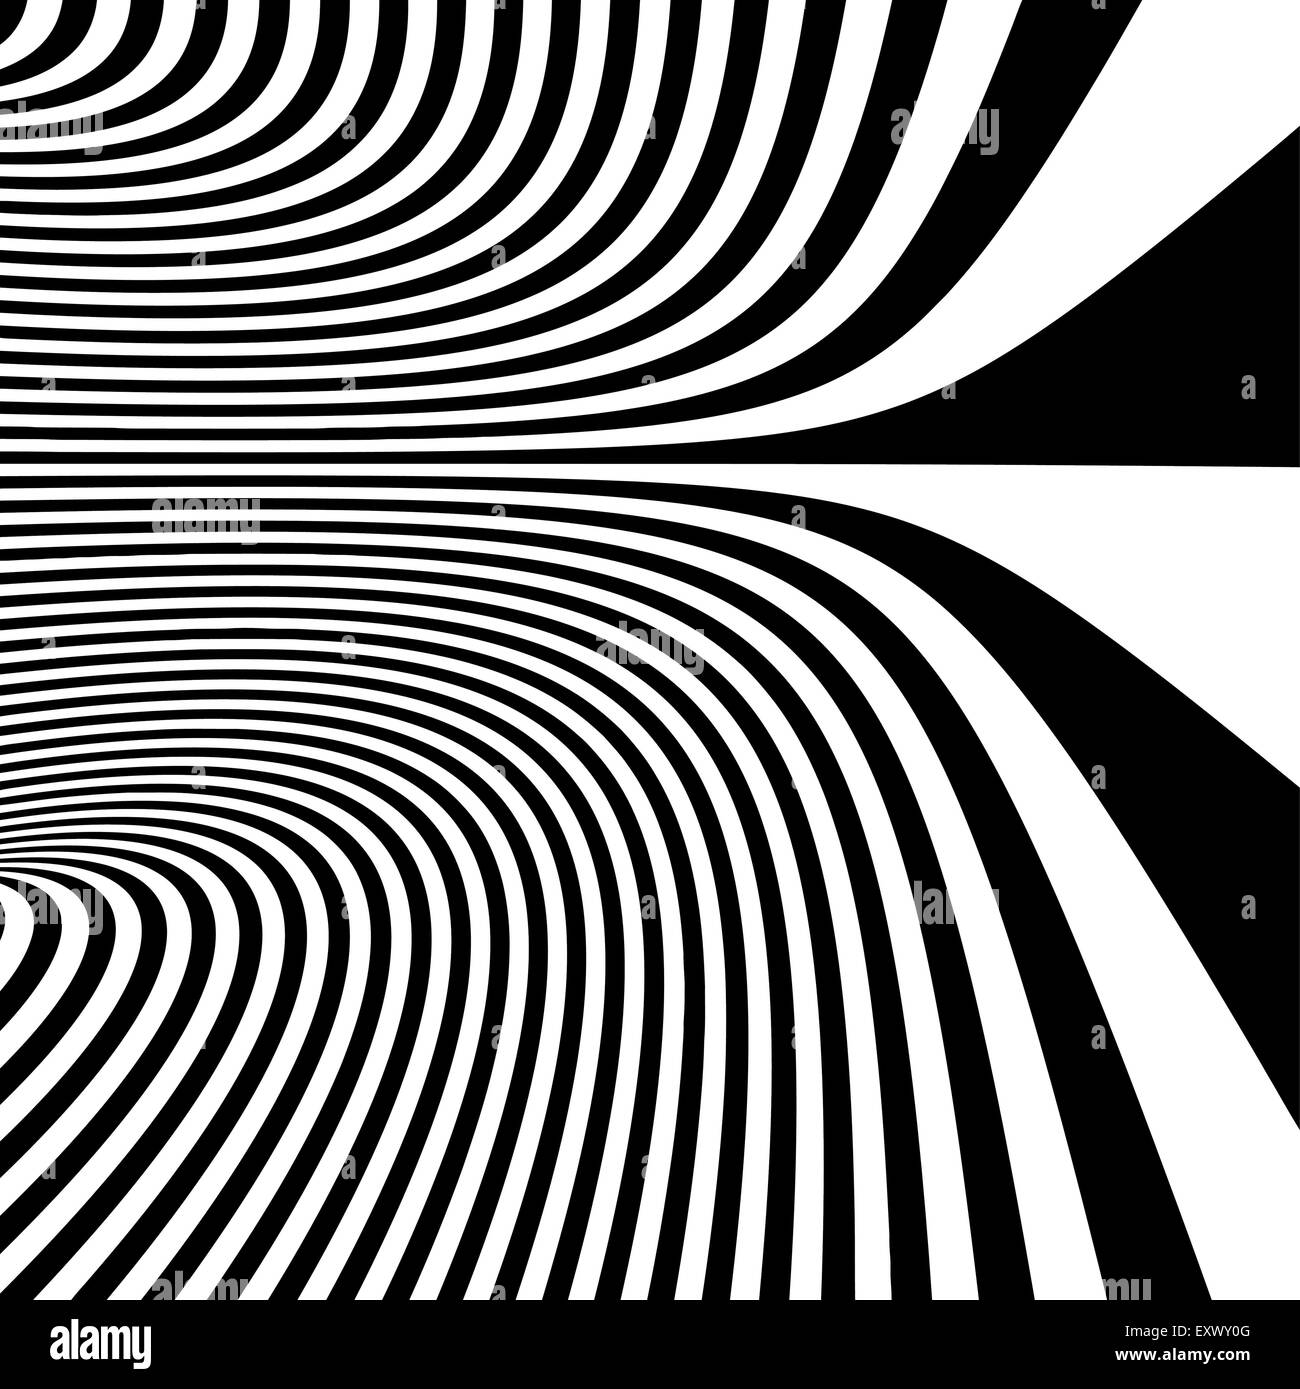 Pattern with optical illusion. Black and white background. Vector illustration. - Stock Image